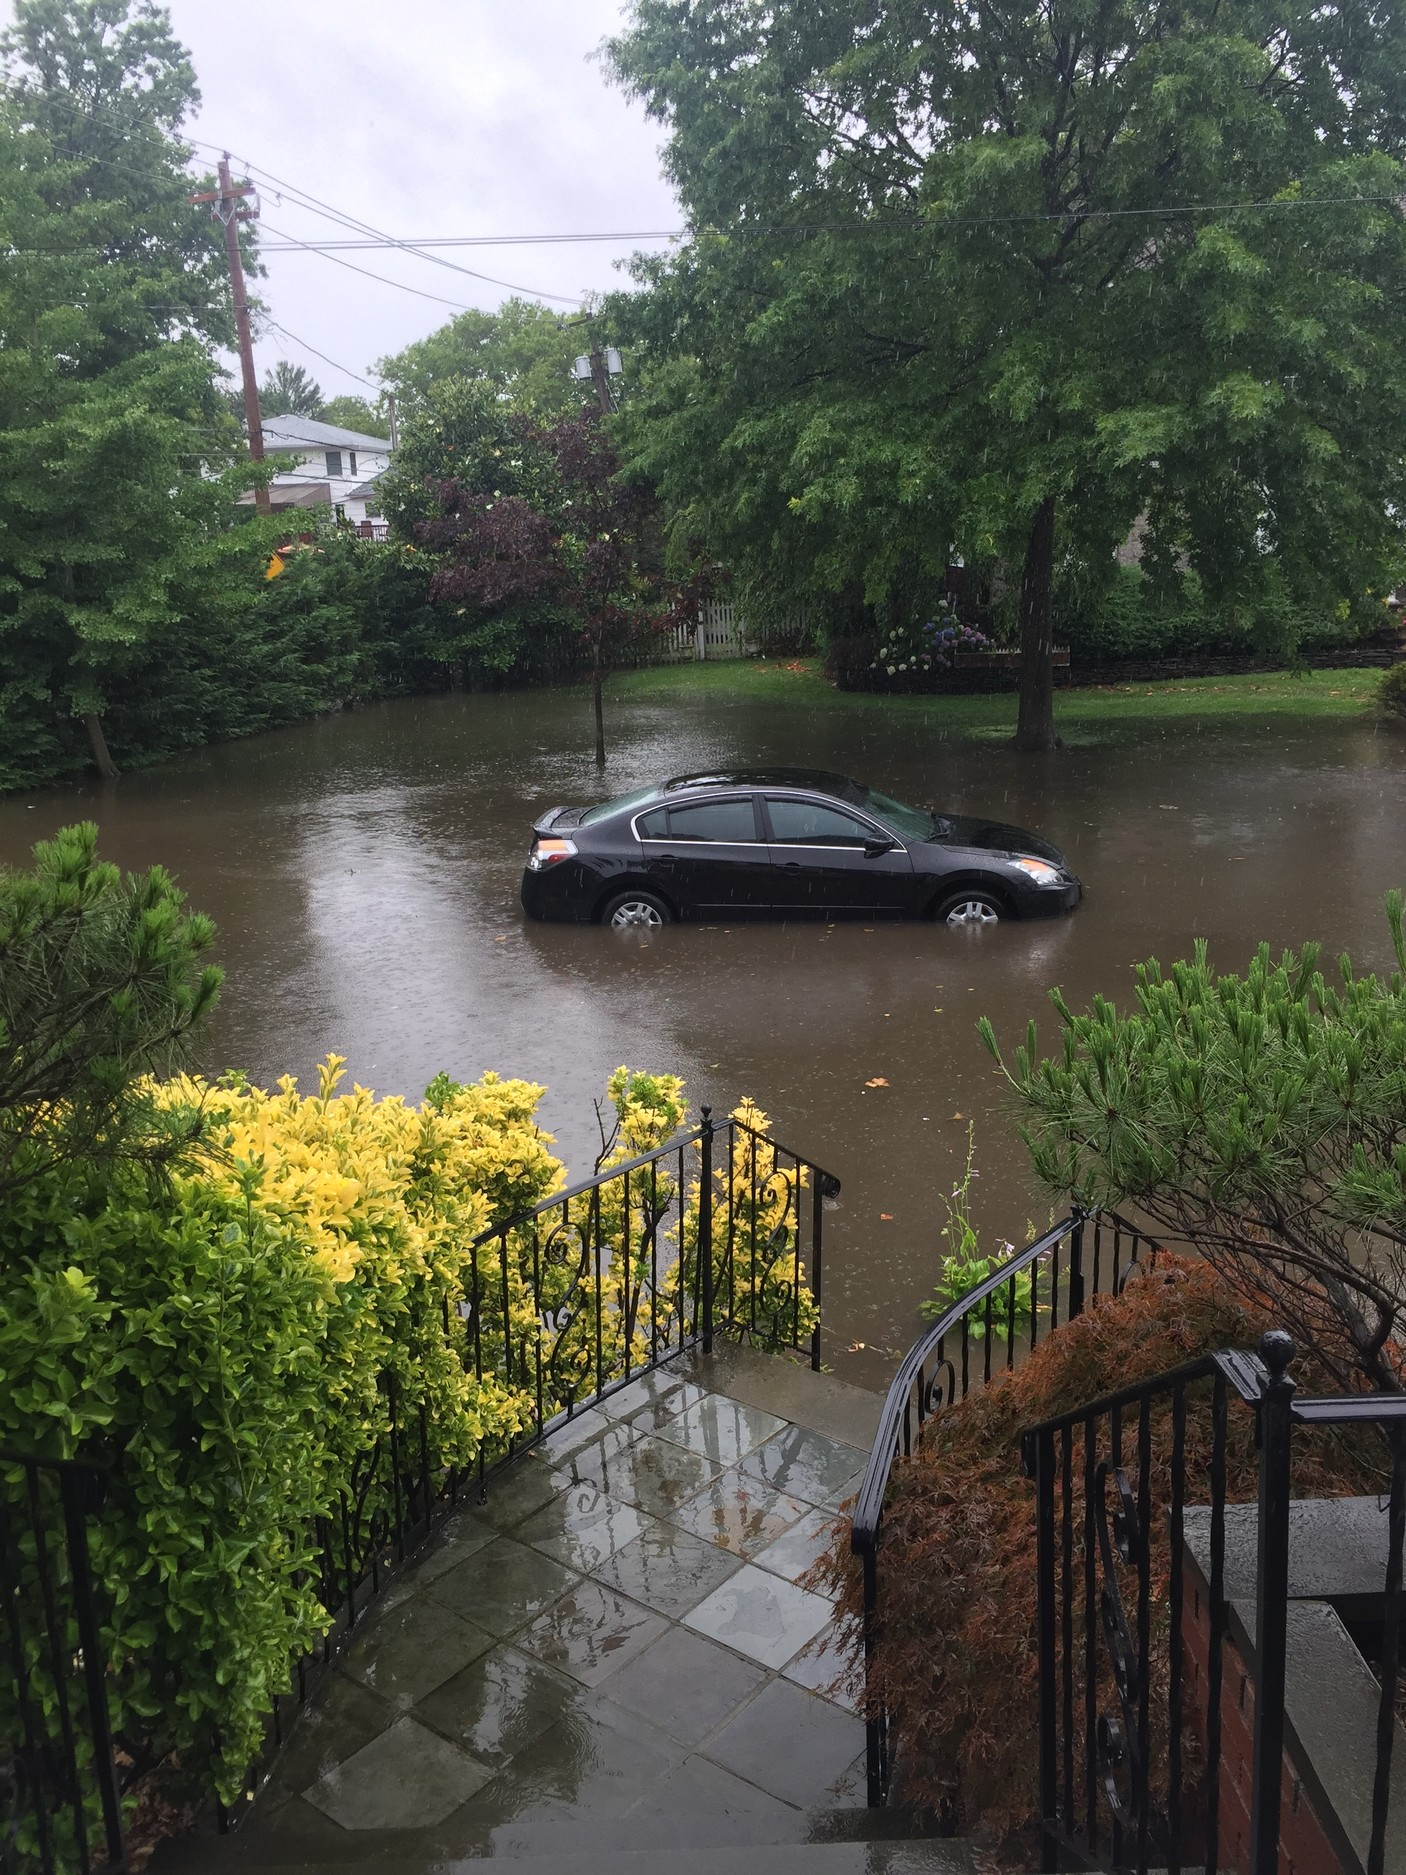 The intersection of Meadow Land and Marbridge Road in Lawrence has flooded for years, residents said. Above, a car stranded after a July rainstorm.